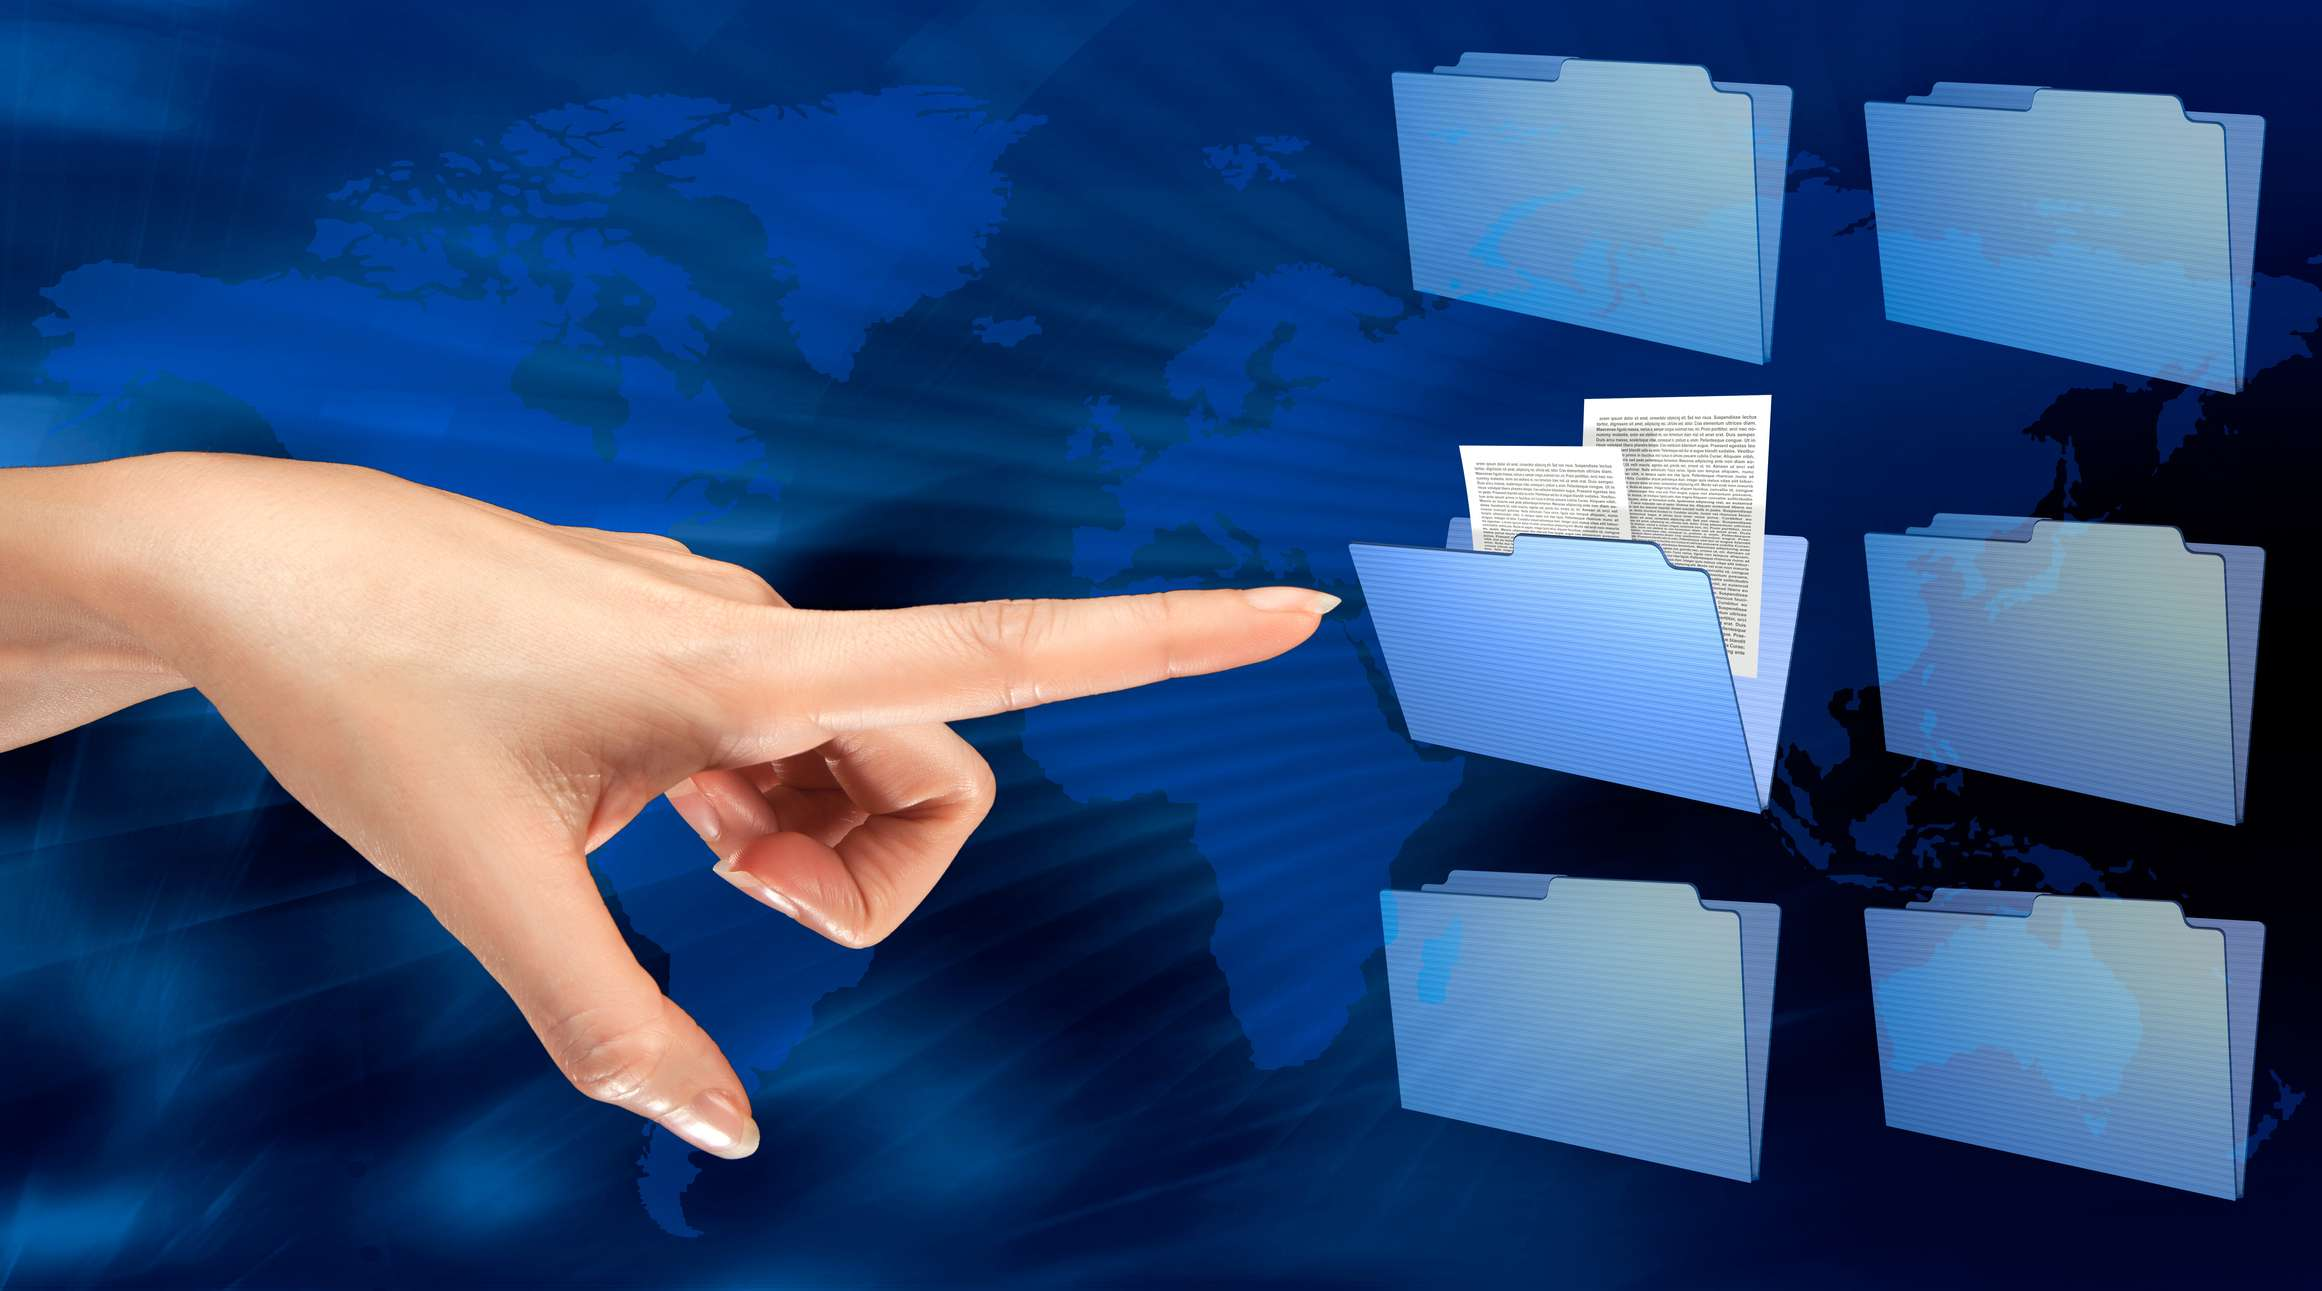 An image graphic of a woman pointing to a group of file folders.